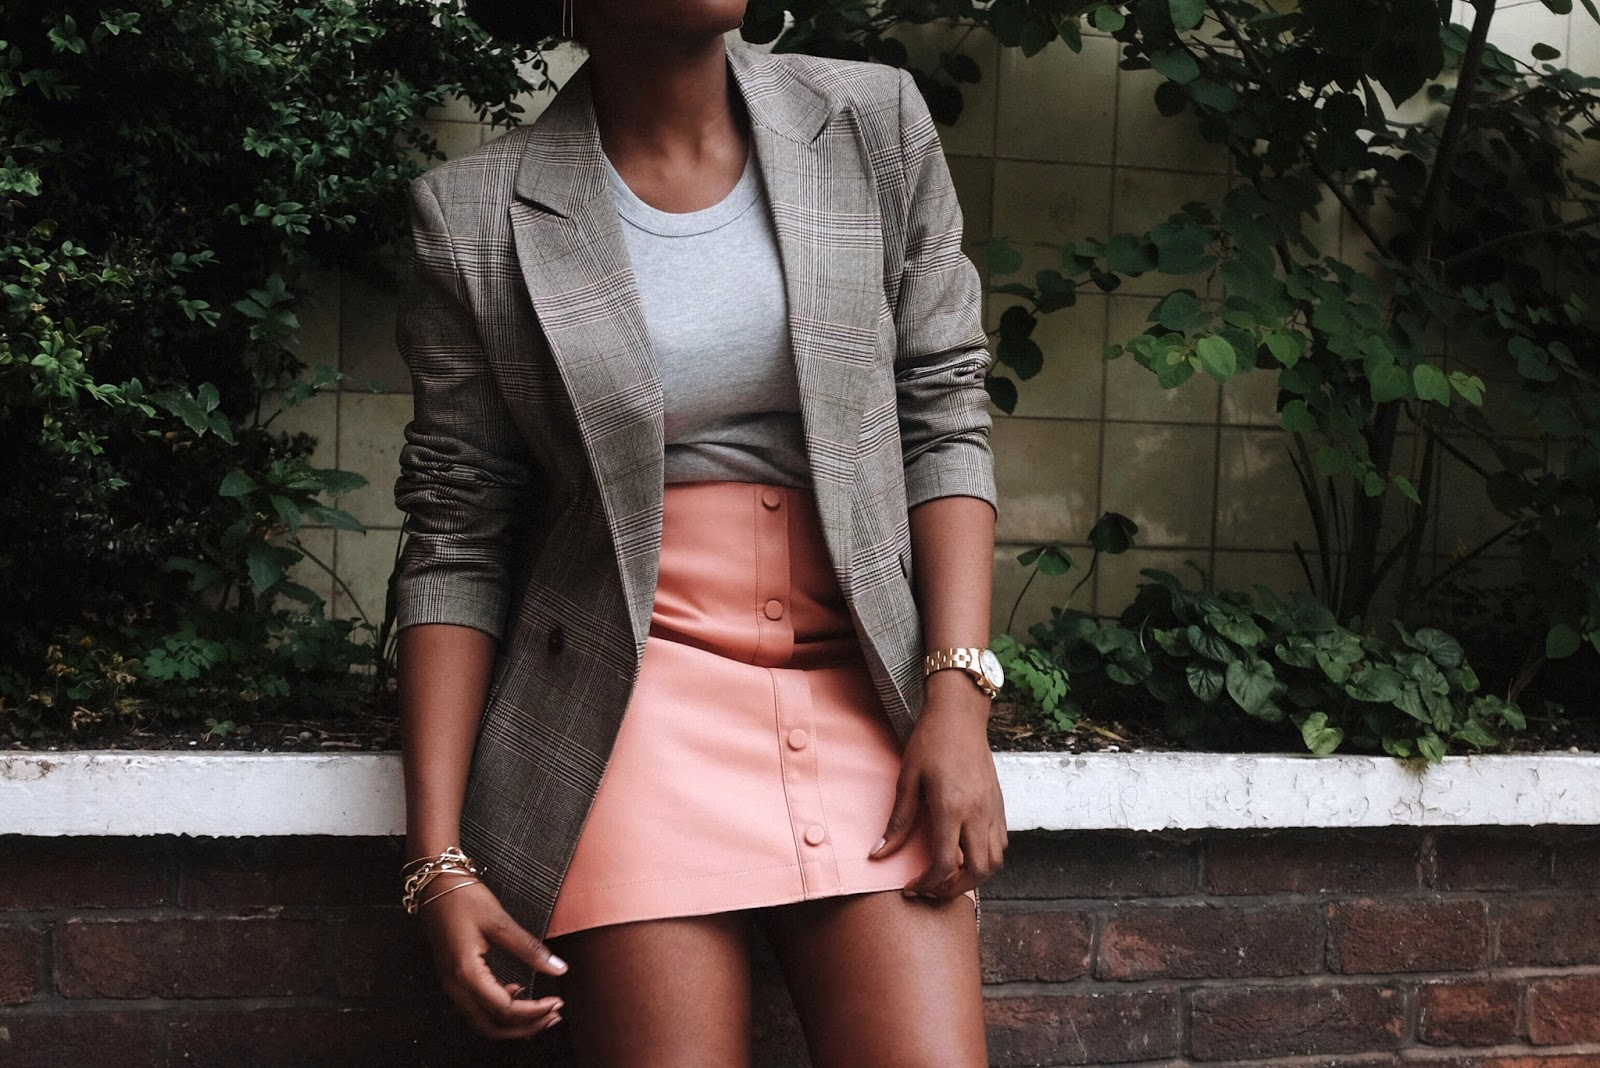 Checked Topshop Blazer, Grey River Island Bodysuit, Blush Pink Leather Look River Island A-Line Mini Skirt, White Superga 2750 Trainers